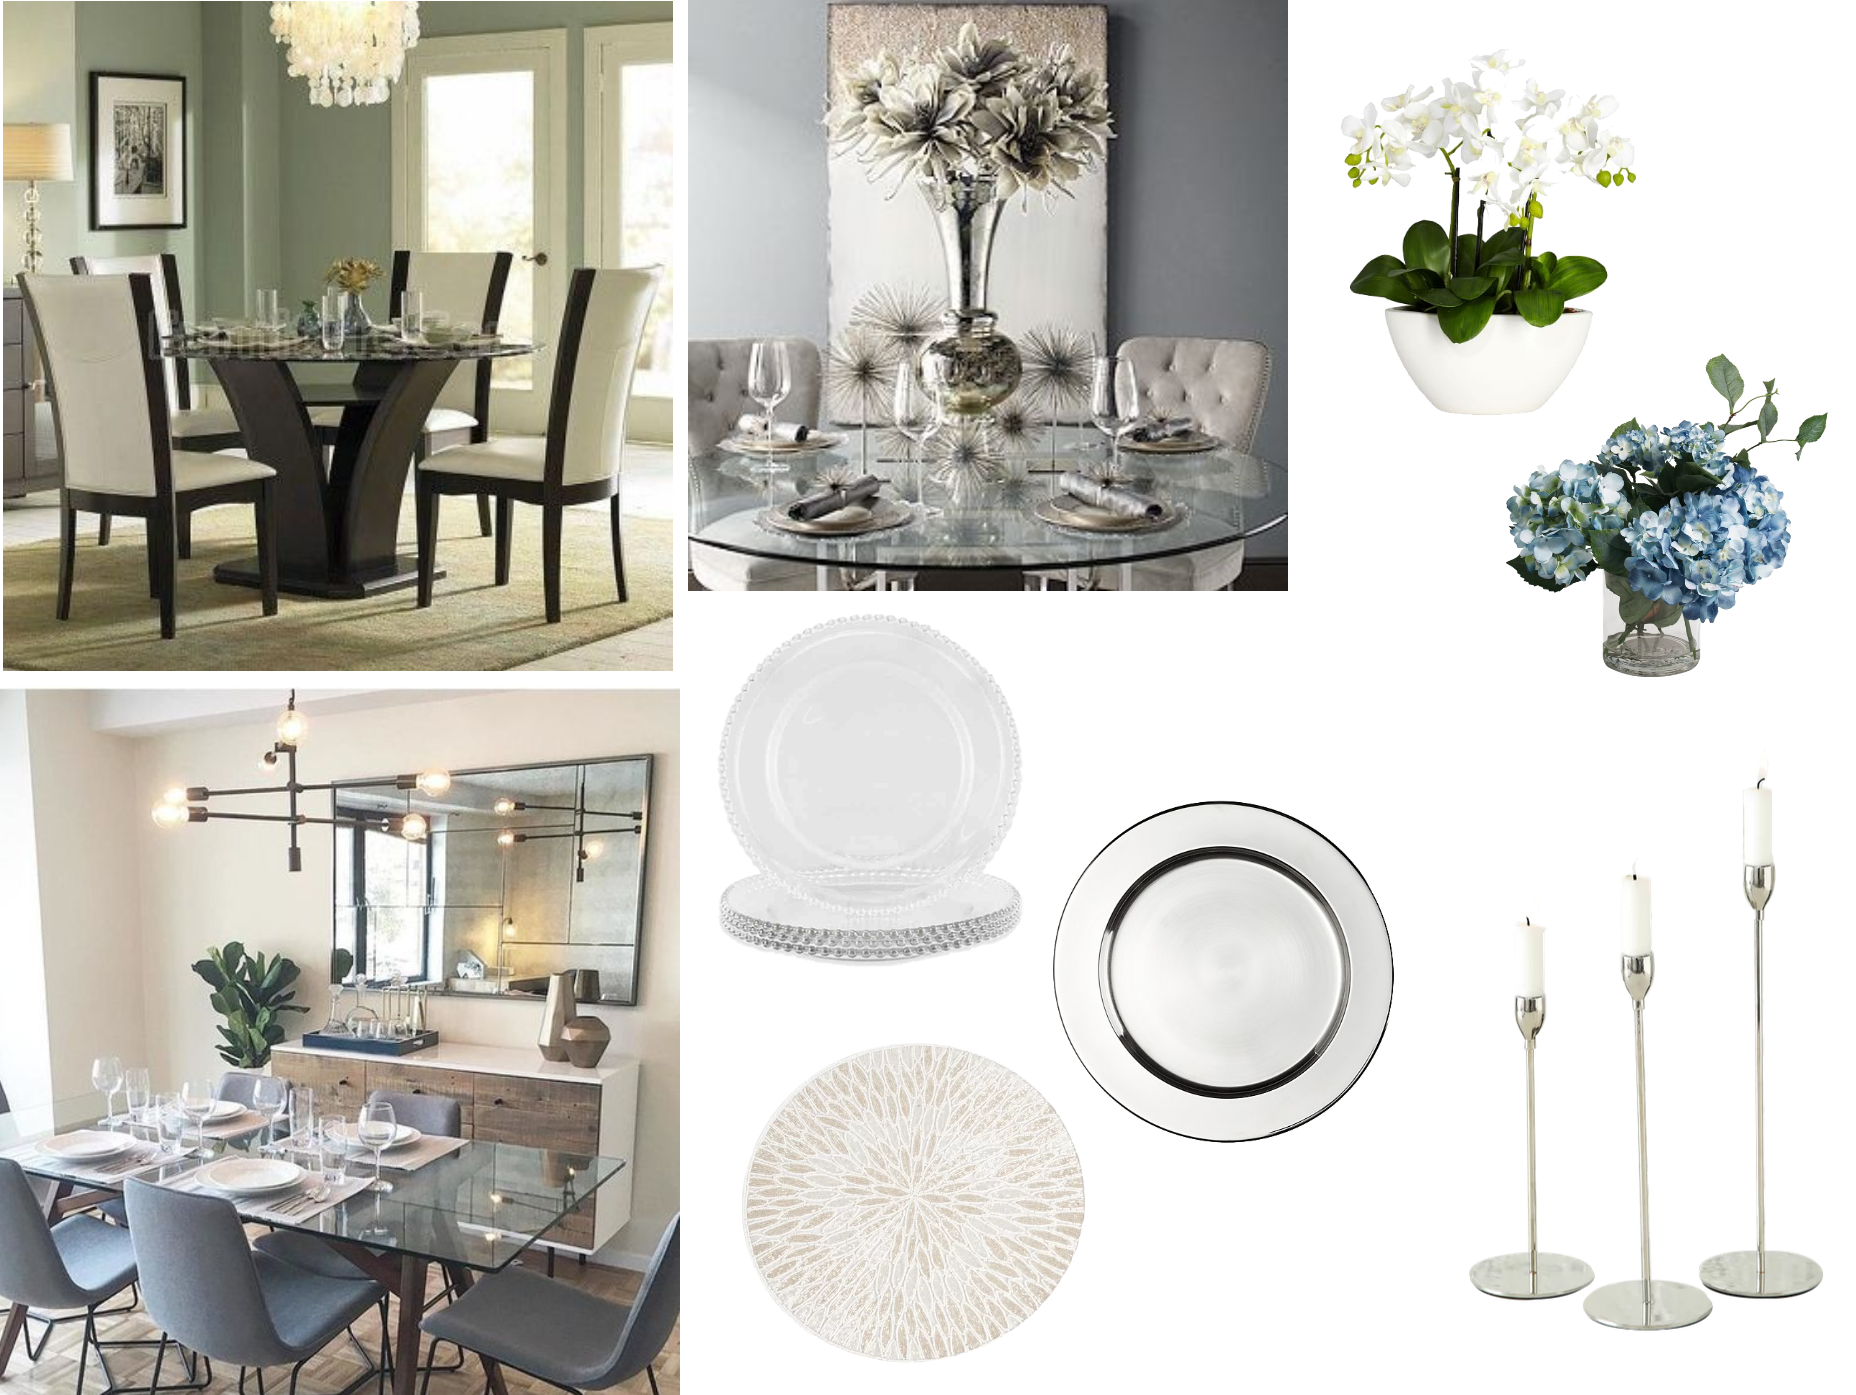 What Type Of Tabletop Decor Would Look Good With My Glass Top Dining Table Decorist